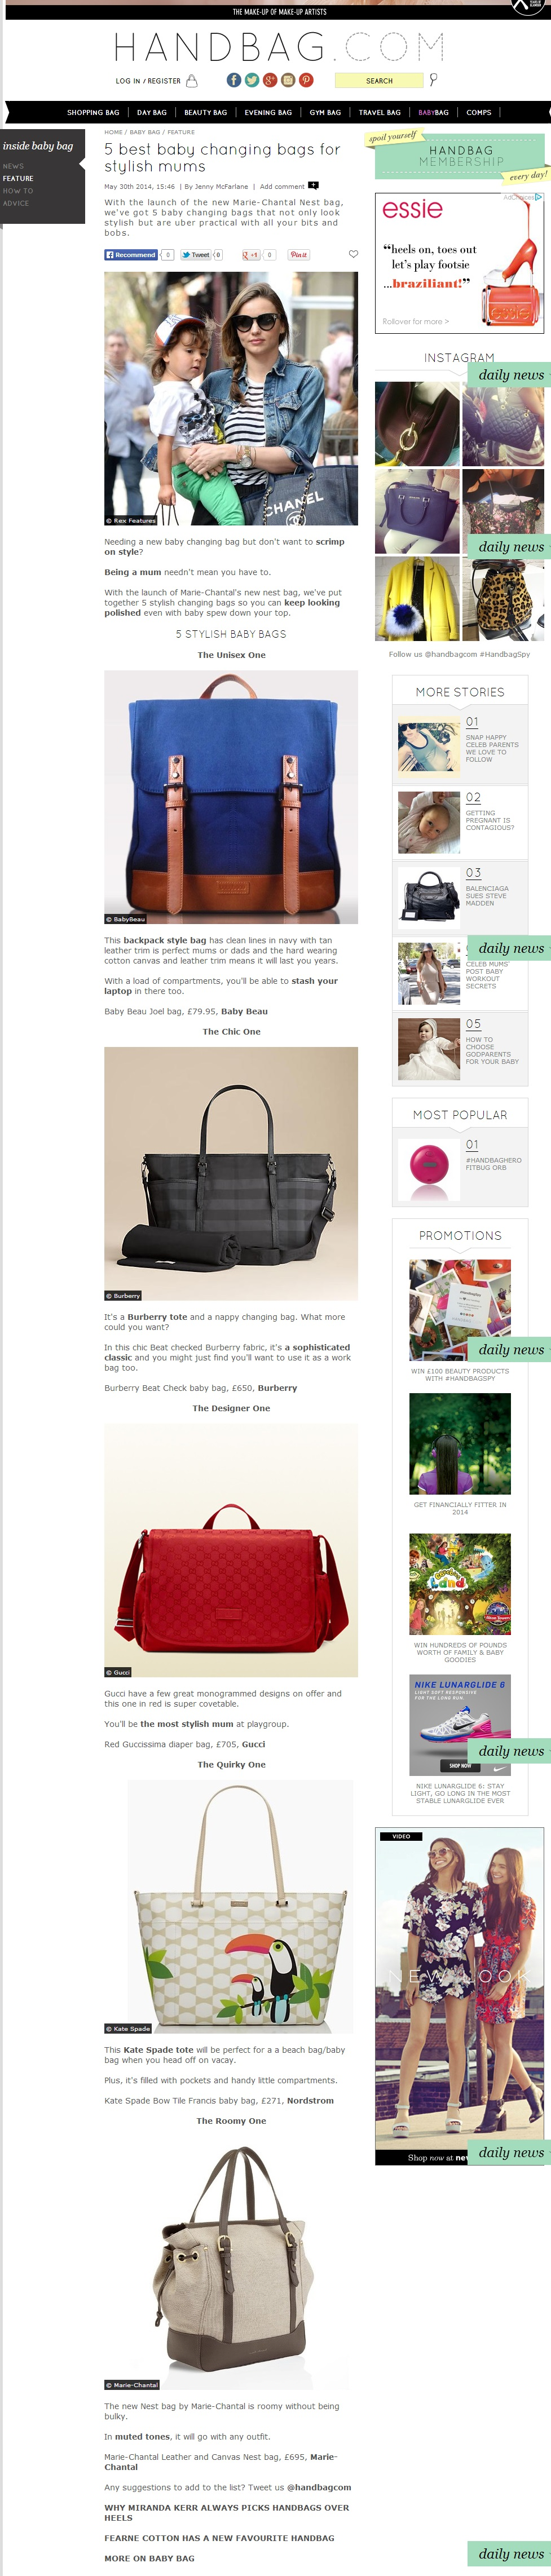 screencapture-www-handbag-com-baby-bag-feature-a574533-5-best-baby-changing-bags-for-stylish-mums-html